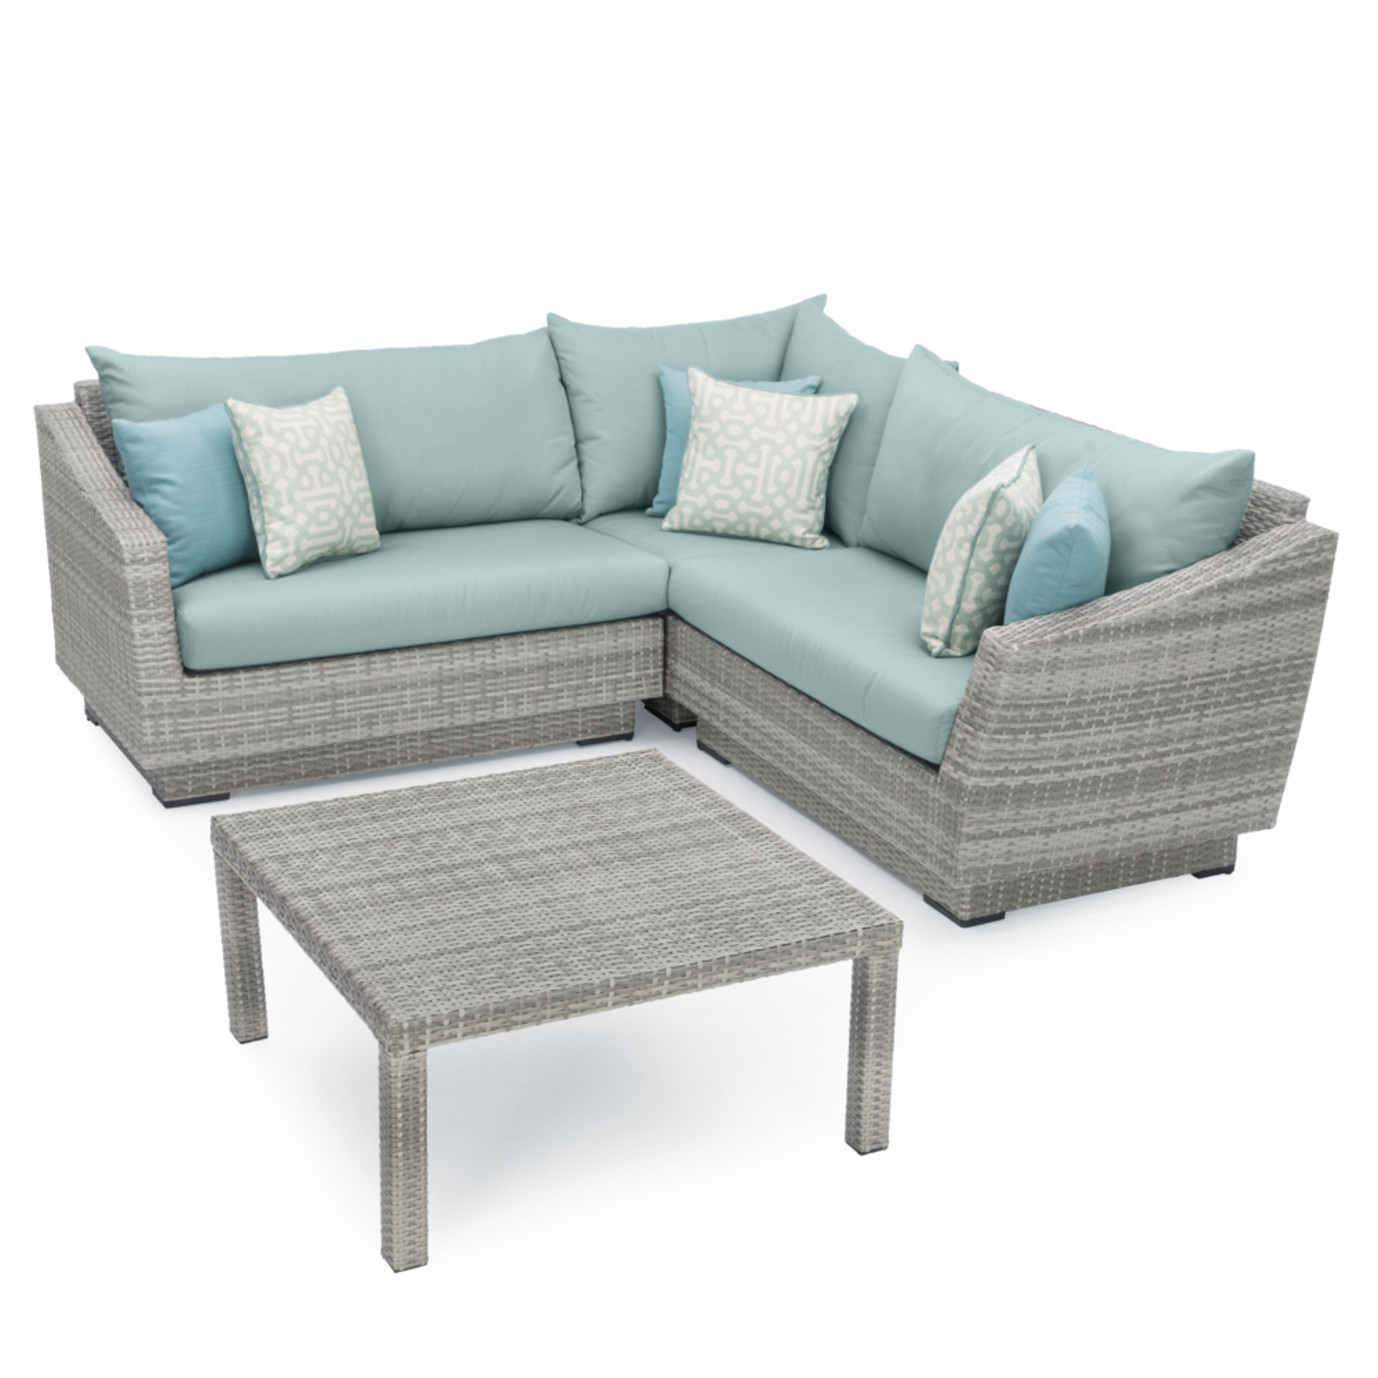 Cannes™ 4pc Sectional & Table - Spa Blue